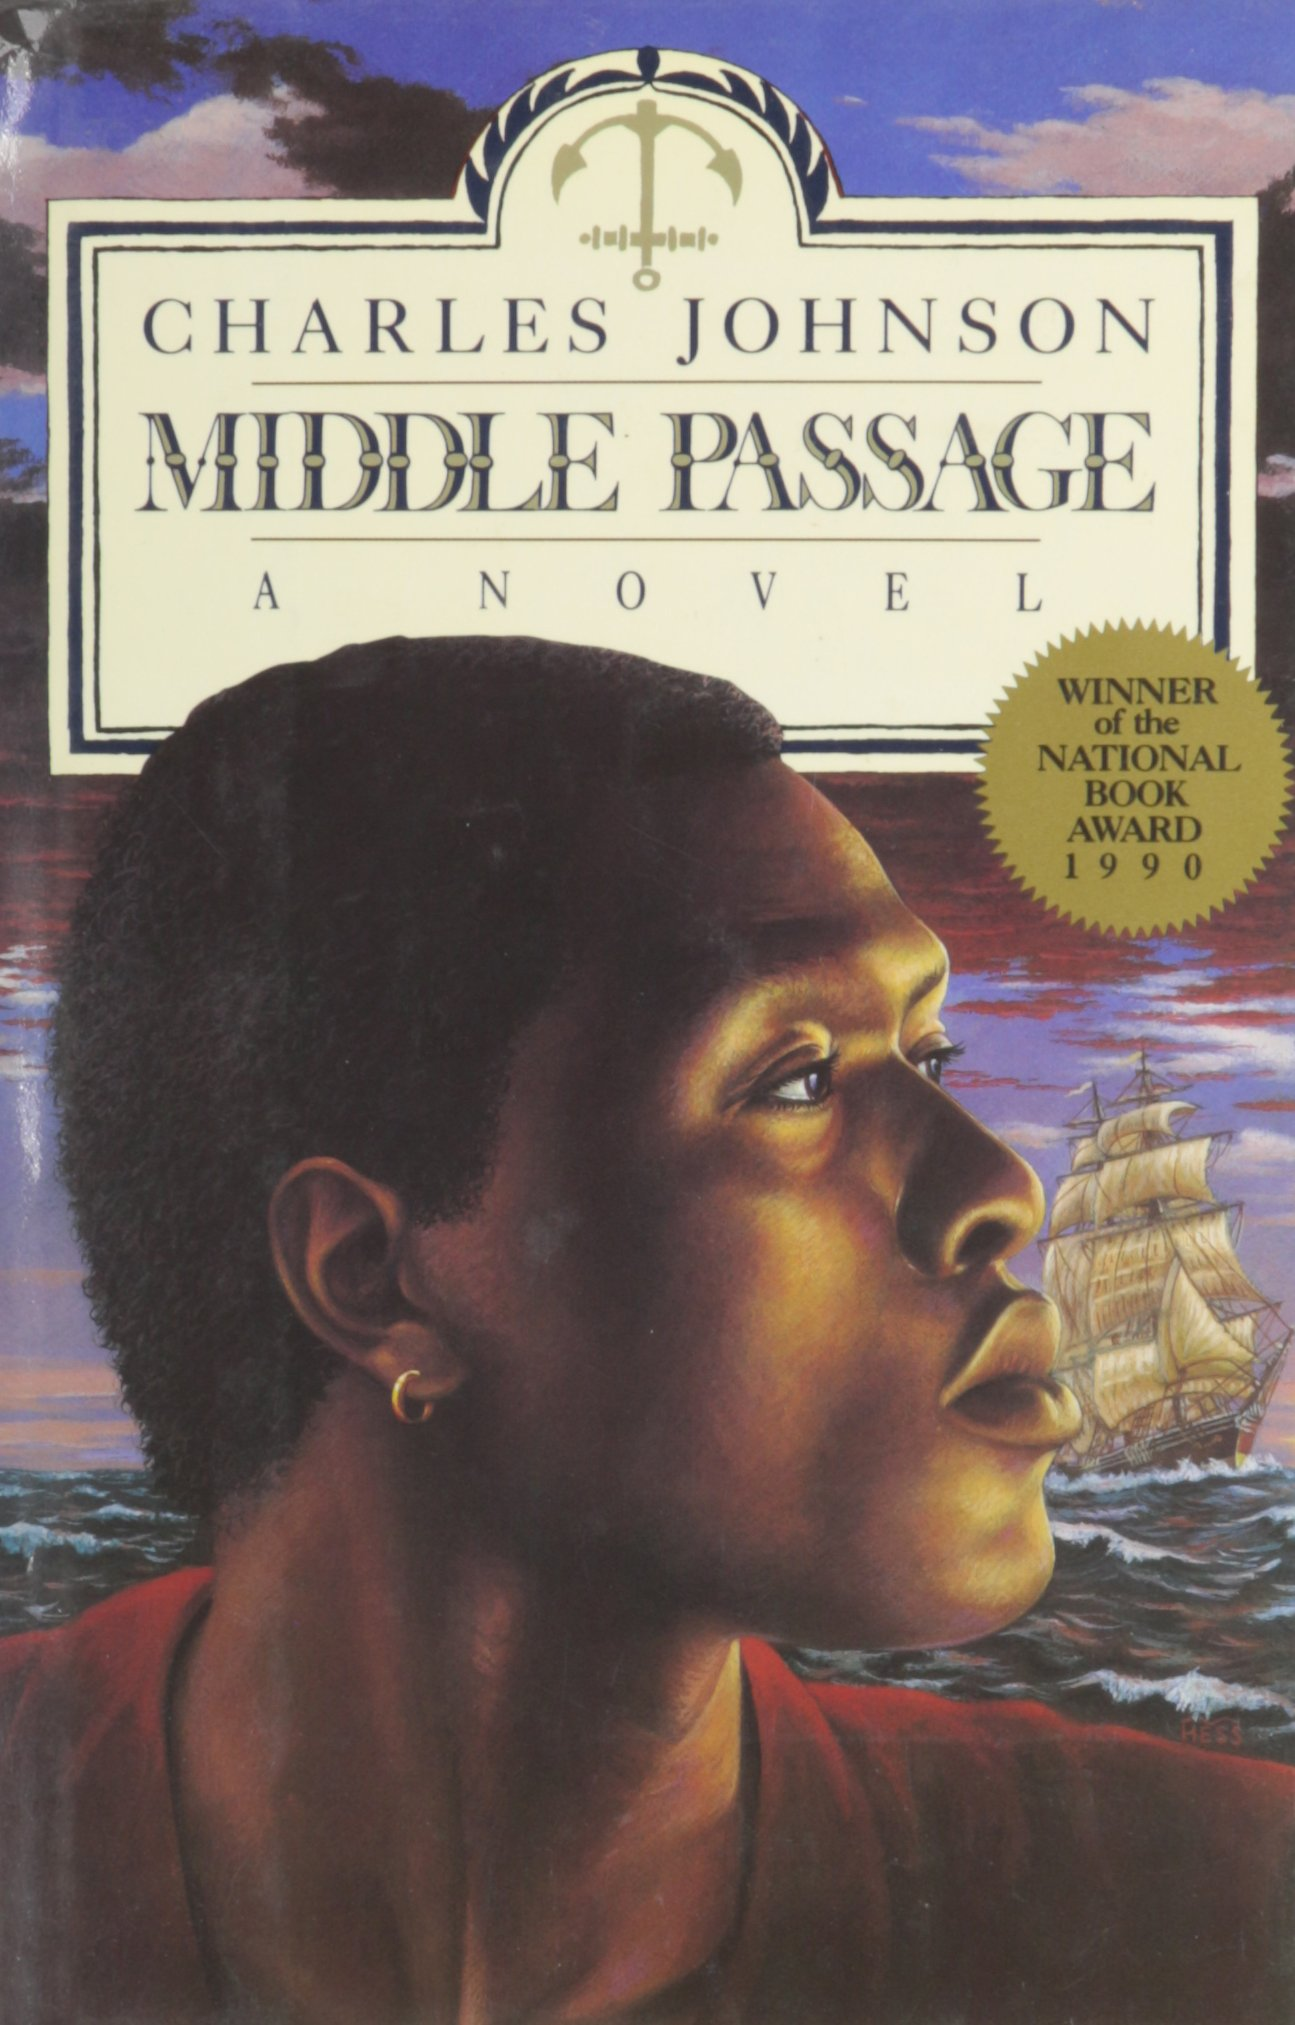 Middle Passage: Charles Johnson: 9780689119682: Amazon.com: Books